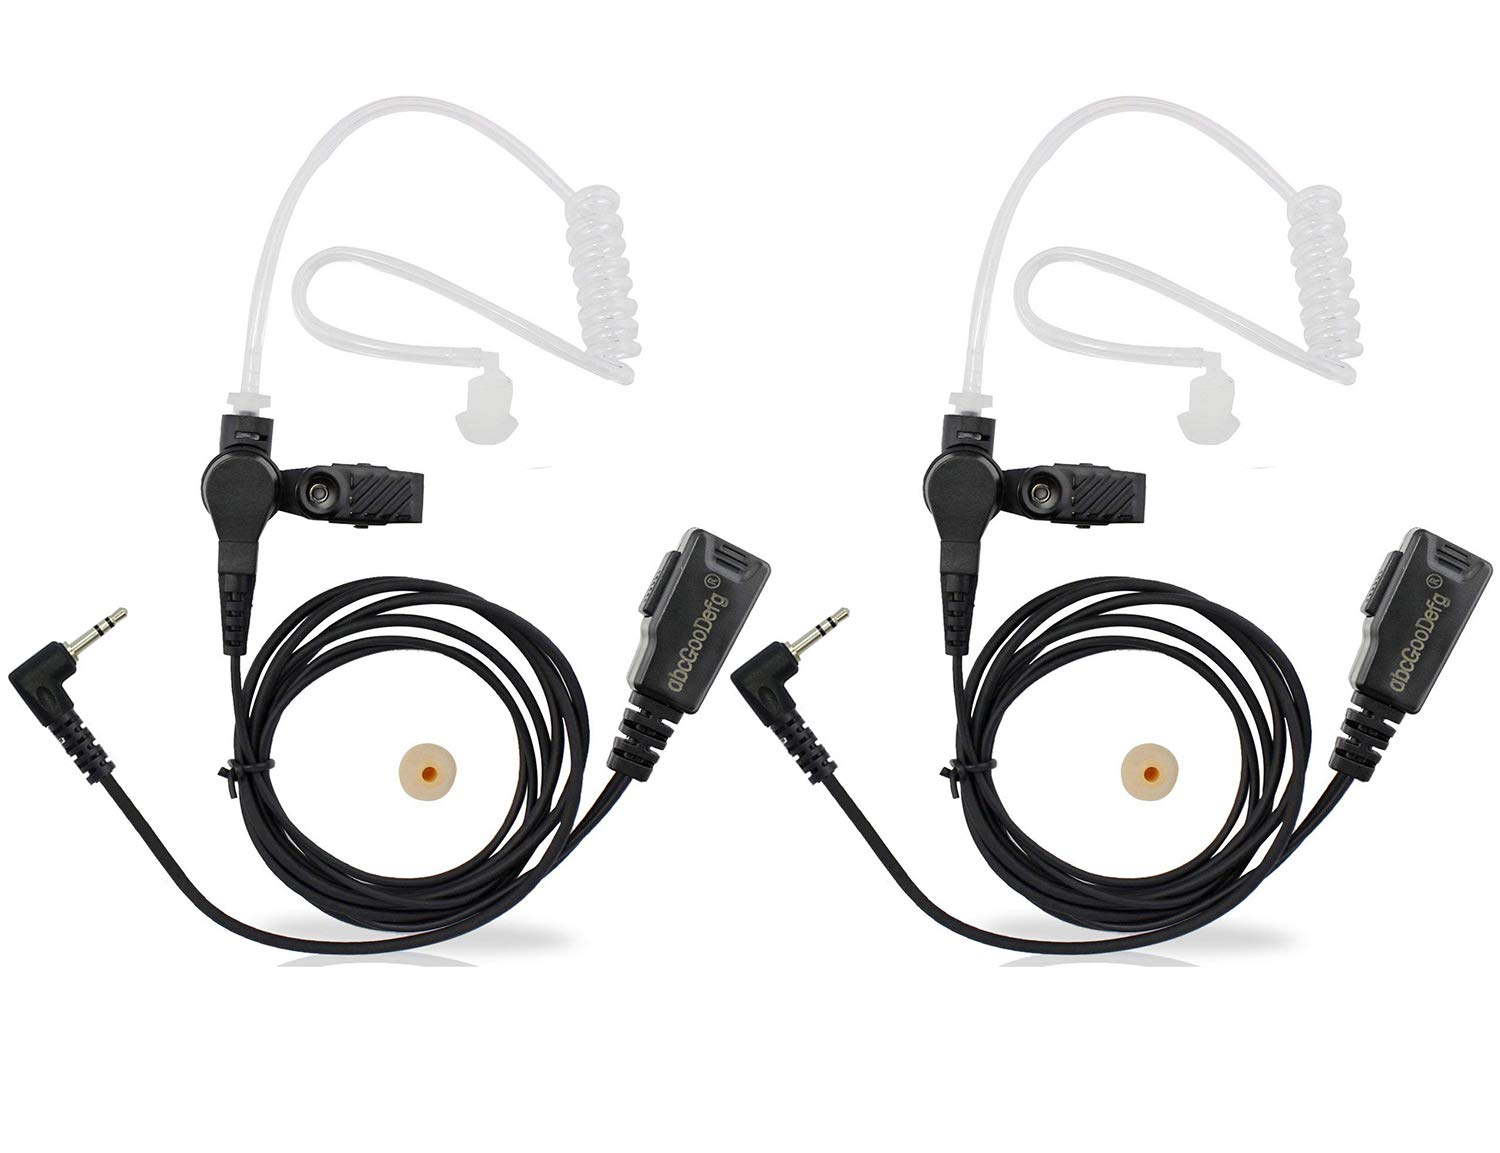 Acoustic Tube Headset Police PTT Mic Earpiece for Motorola Talkabout Radio 1 pin